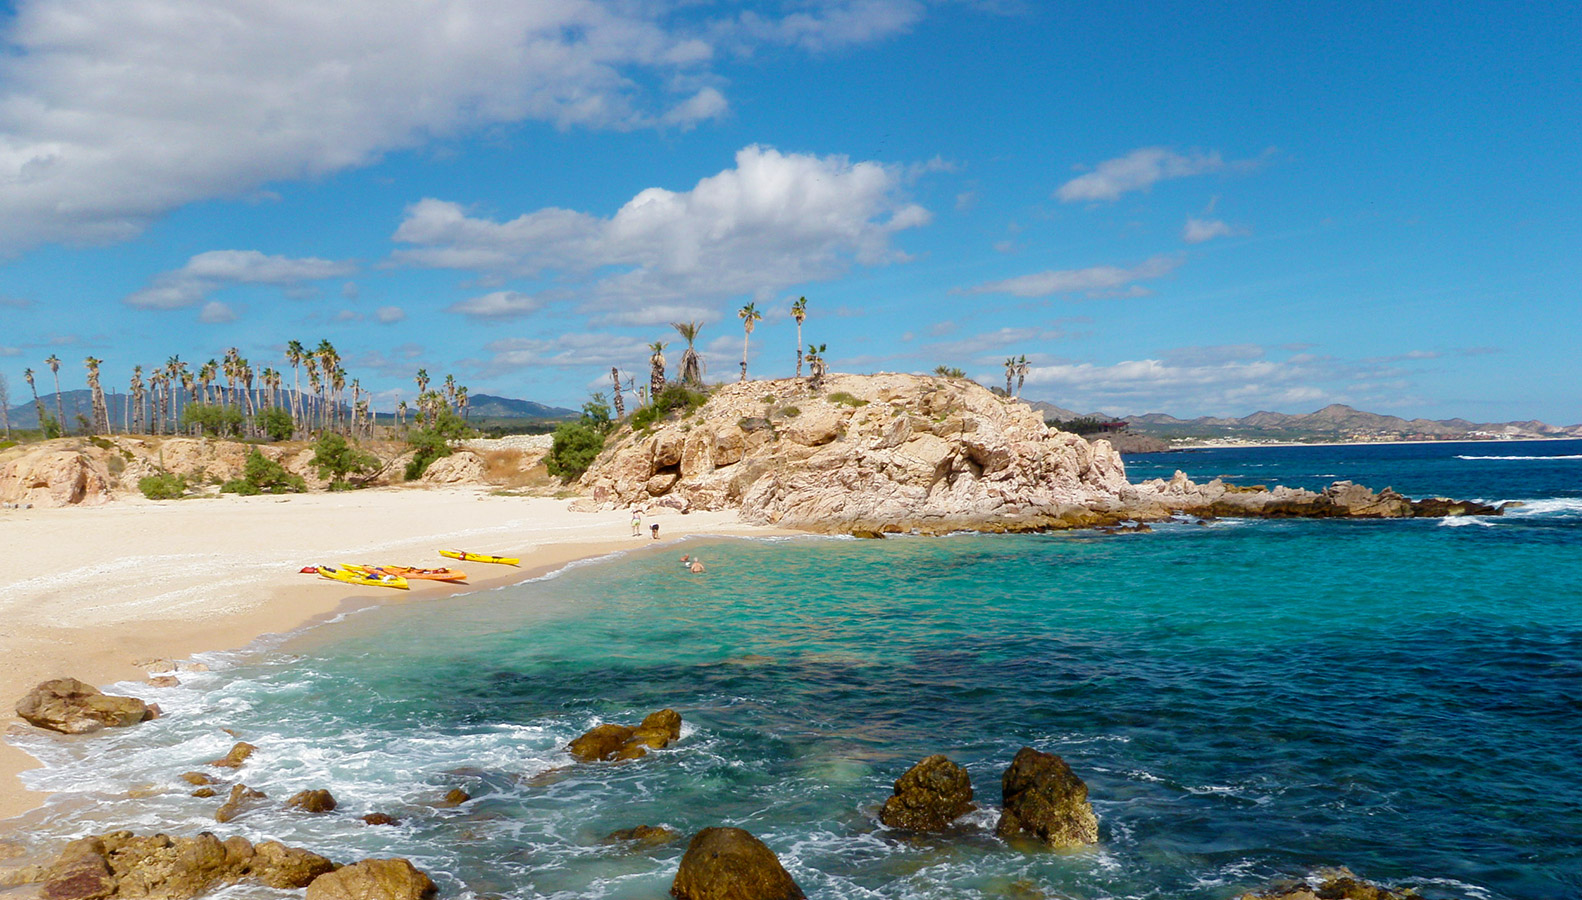 Sea Kayaking & Snorkeling in Baja - Yoga Retreat - Mexico